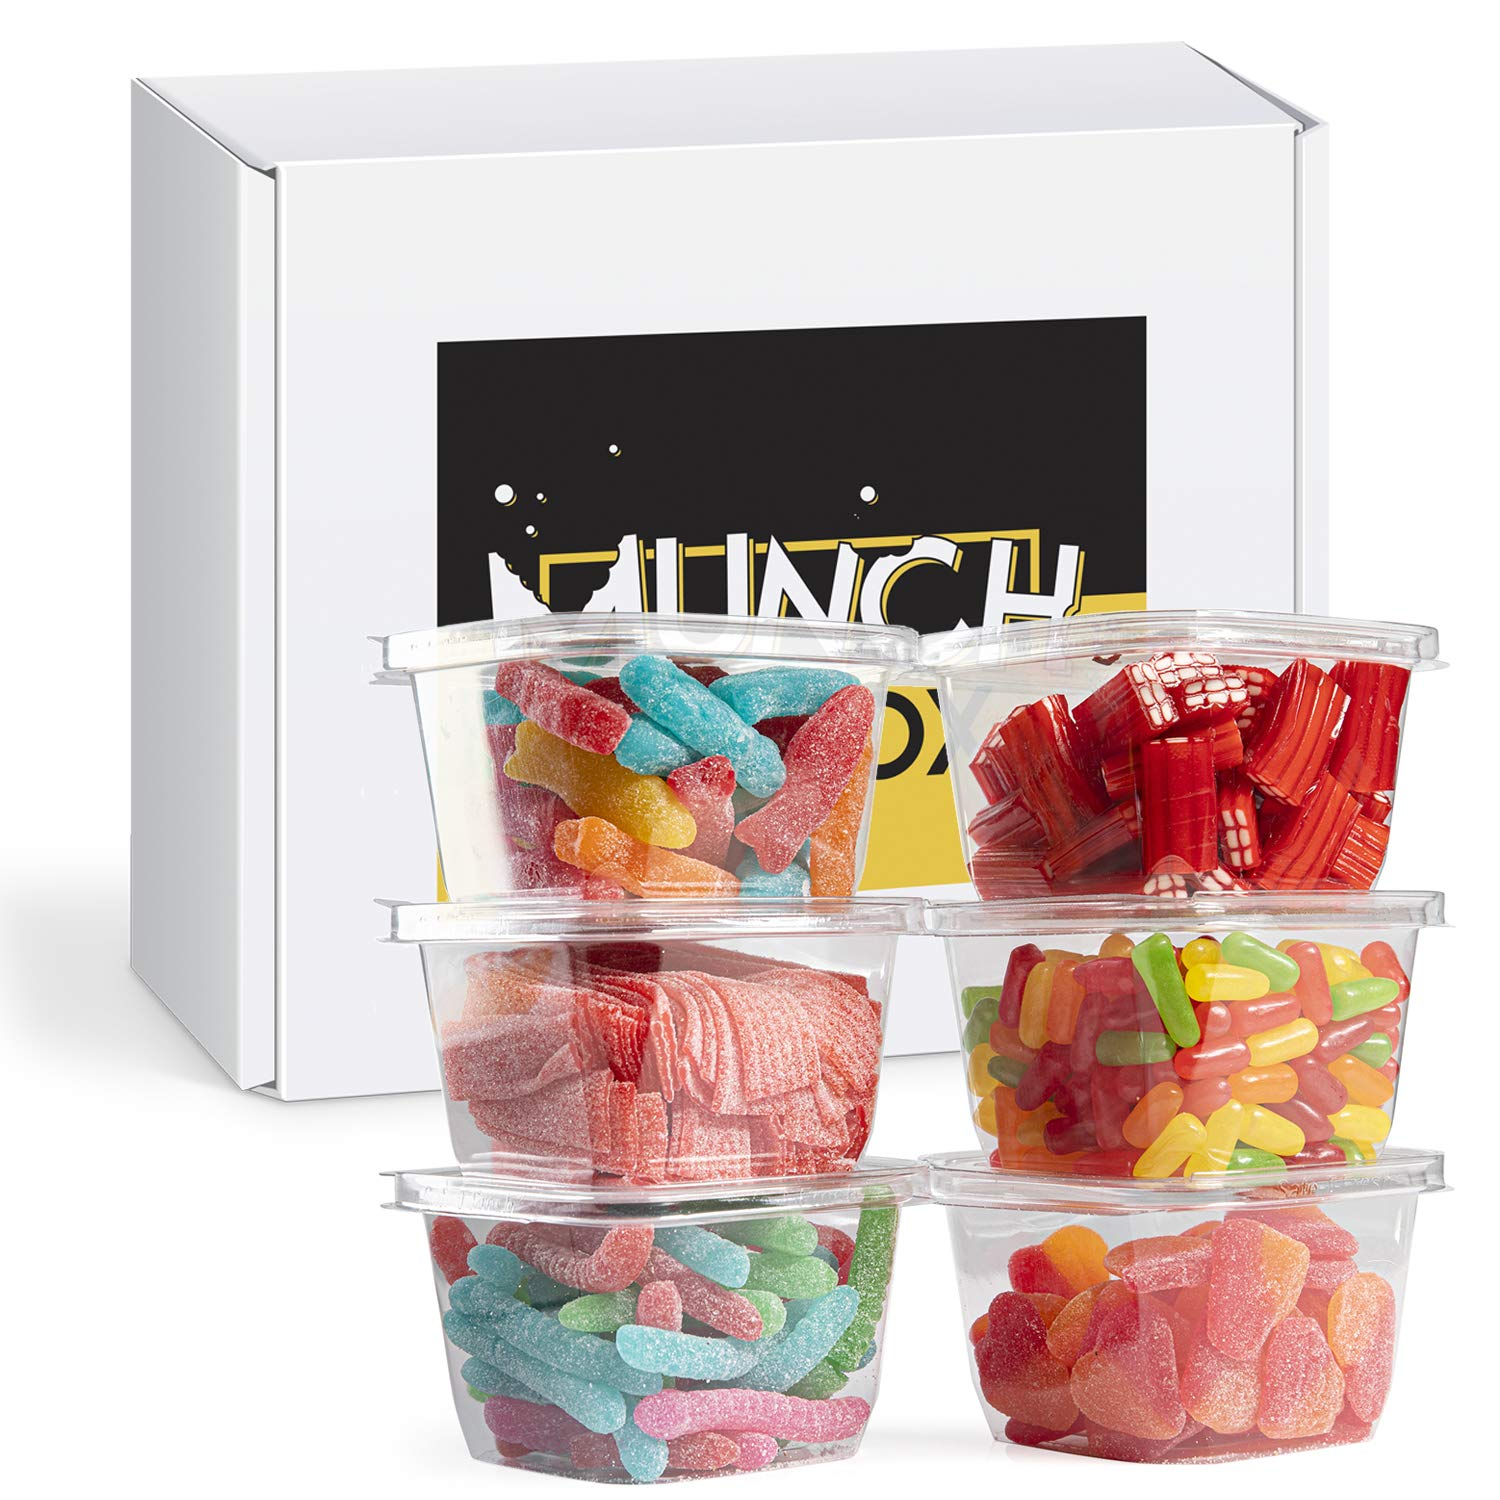 Munch In A Box Snack Care Package - Assorted Candy and Treats Gift Box - Delicious Snacks for Office, Dorm, Home - Party and Holiday Gift Boxes - Variety of 6 Candies and Snacks